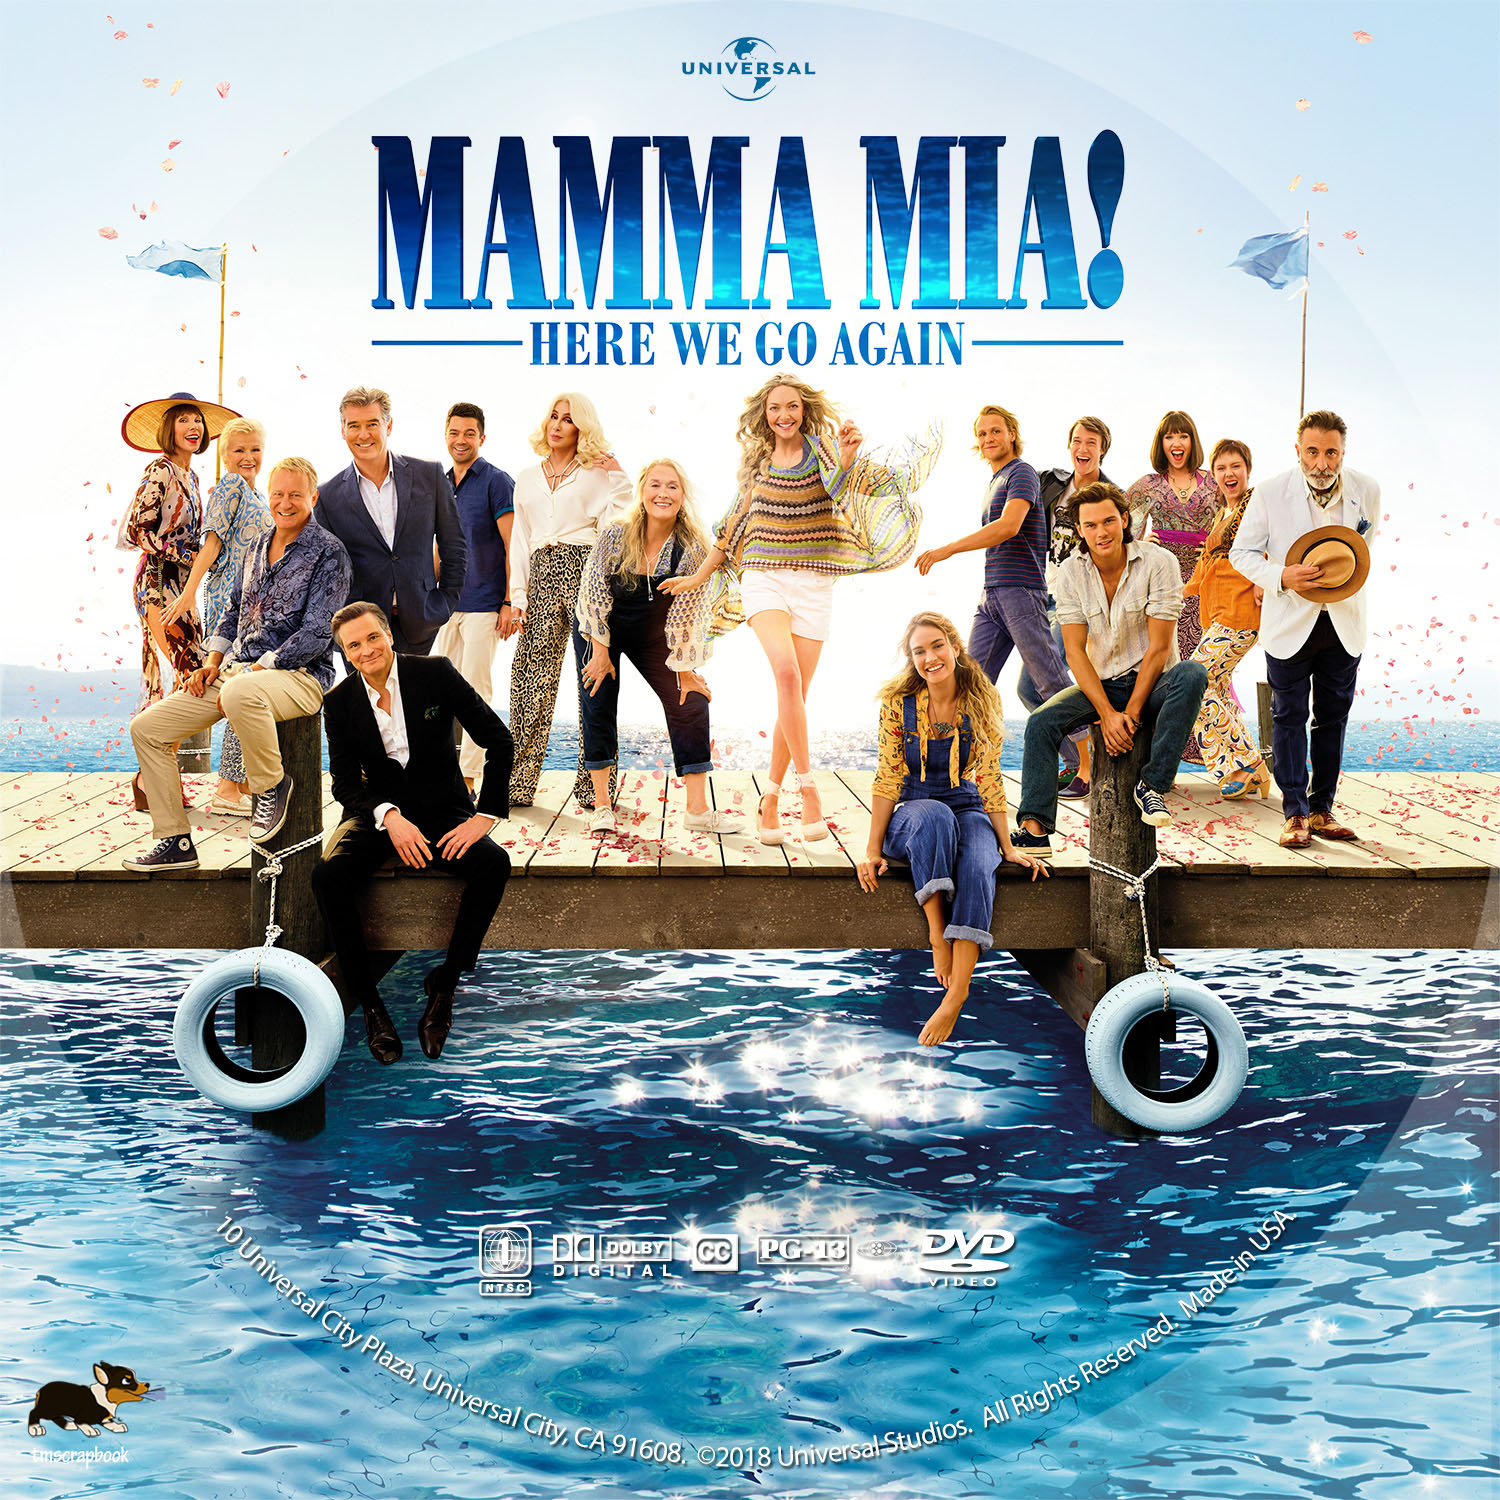 Mamma Mia Here We Go Again 2018 R1 Custom Dvd Label Dvd Covers And Labels